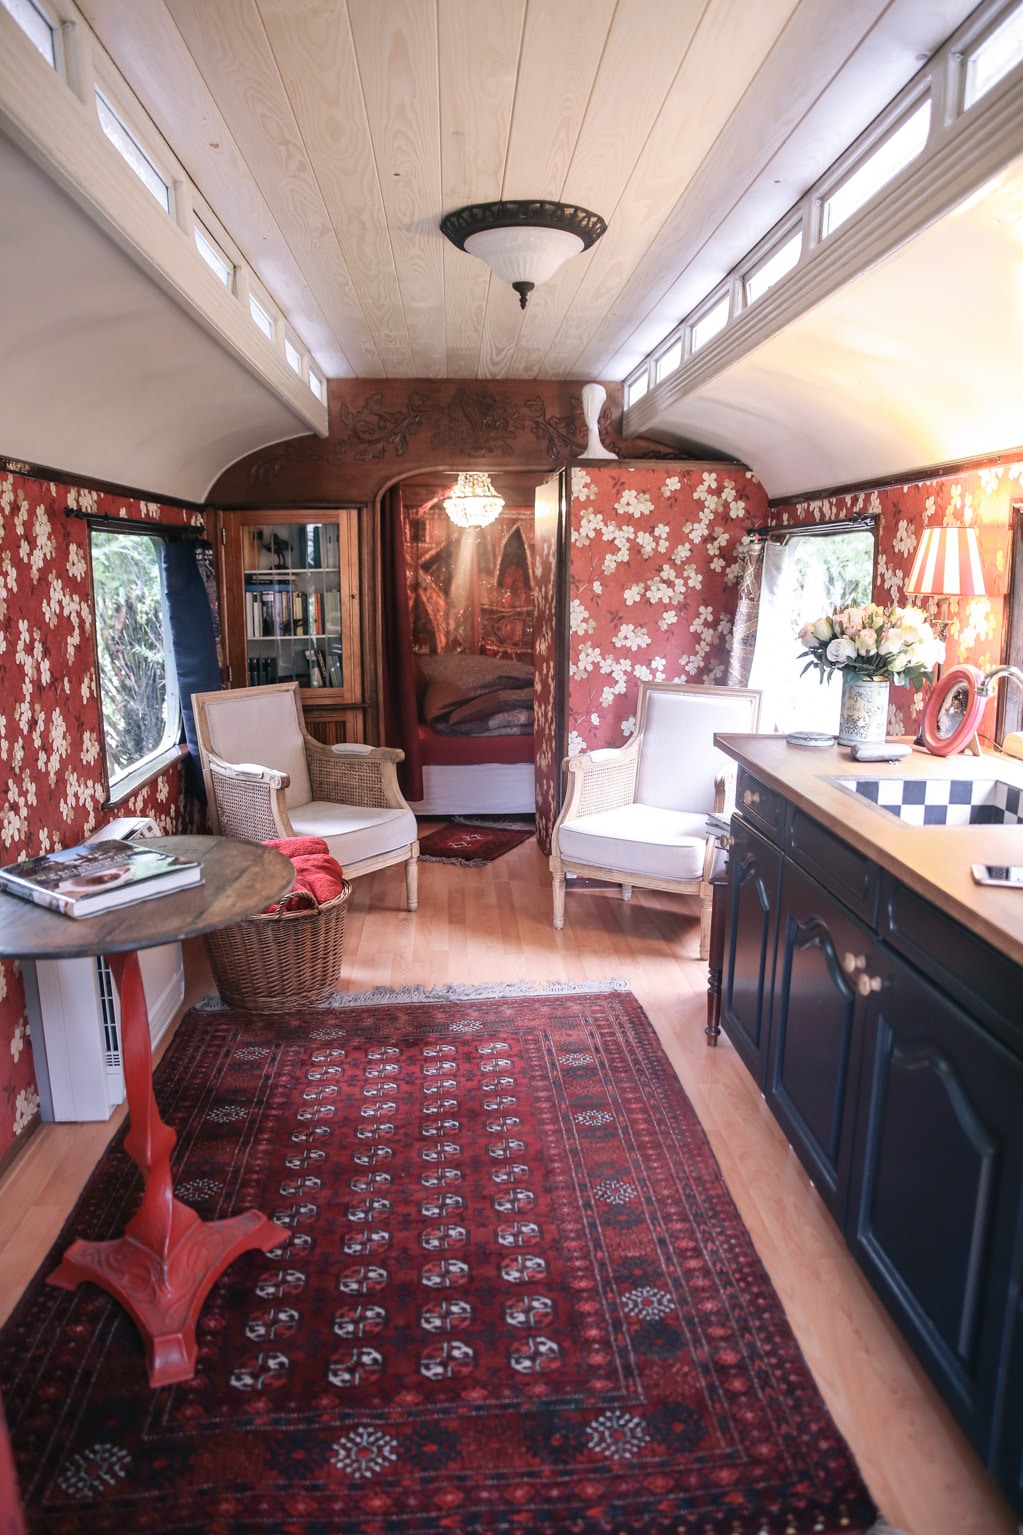 Gypsy wagon glamping, Hallstatt - Austria by The Belle Blog